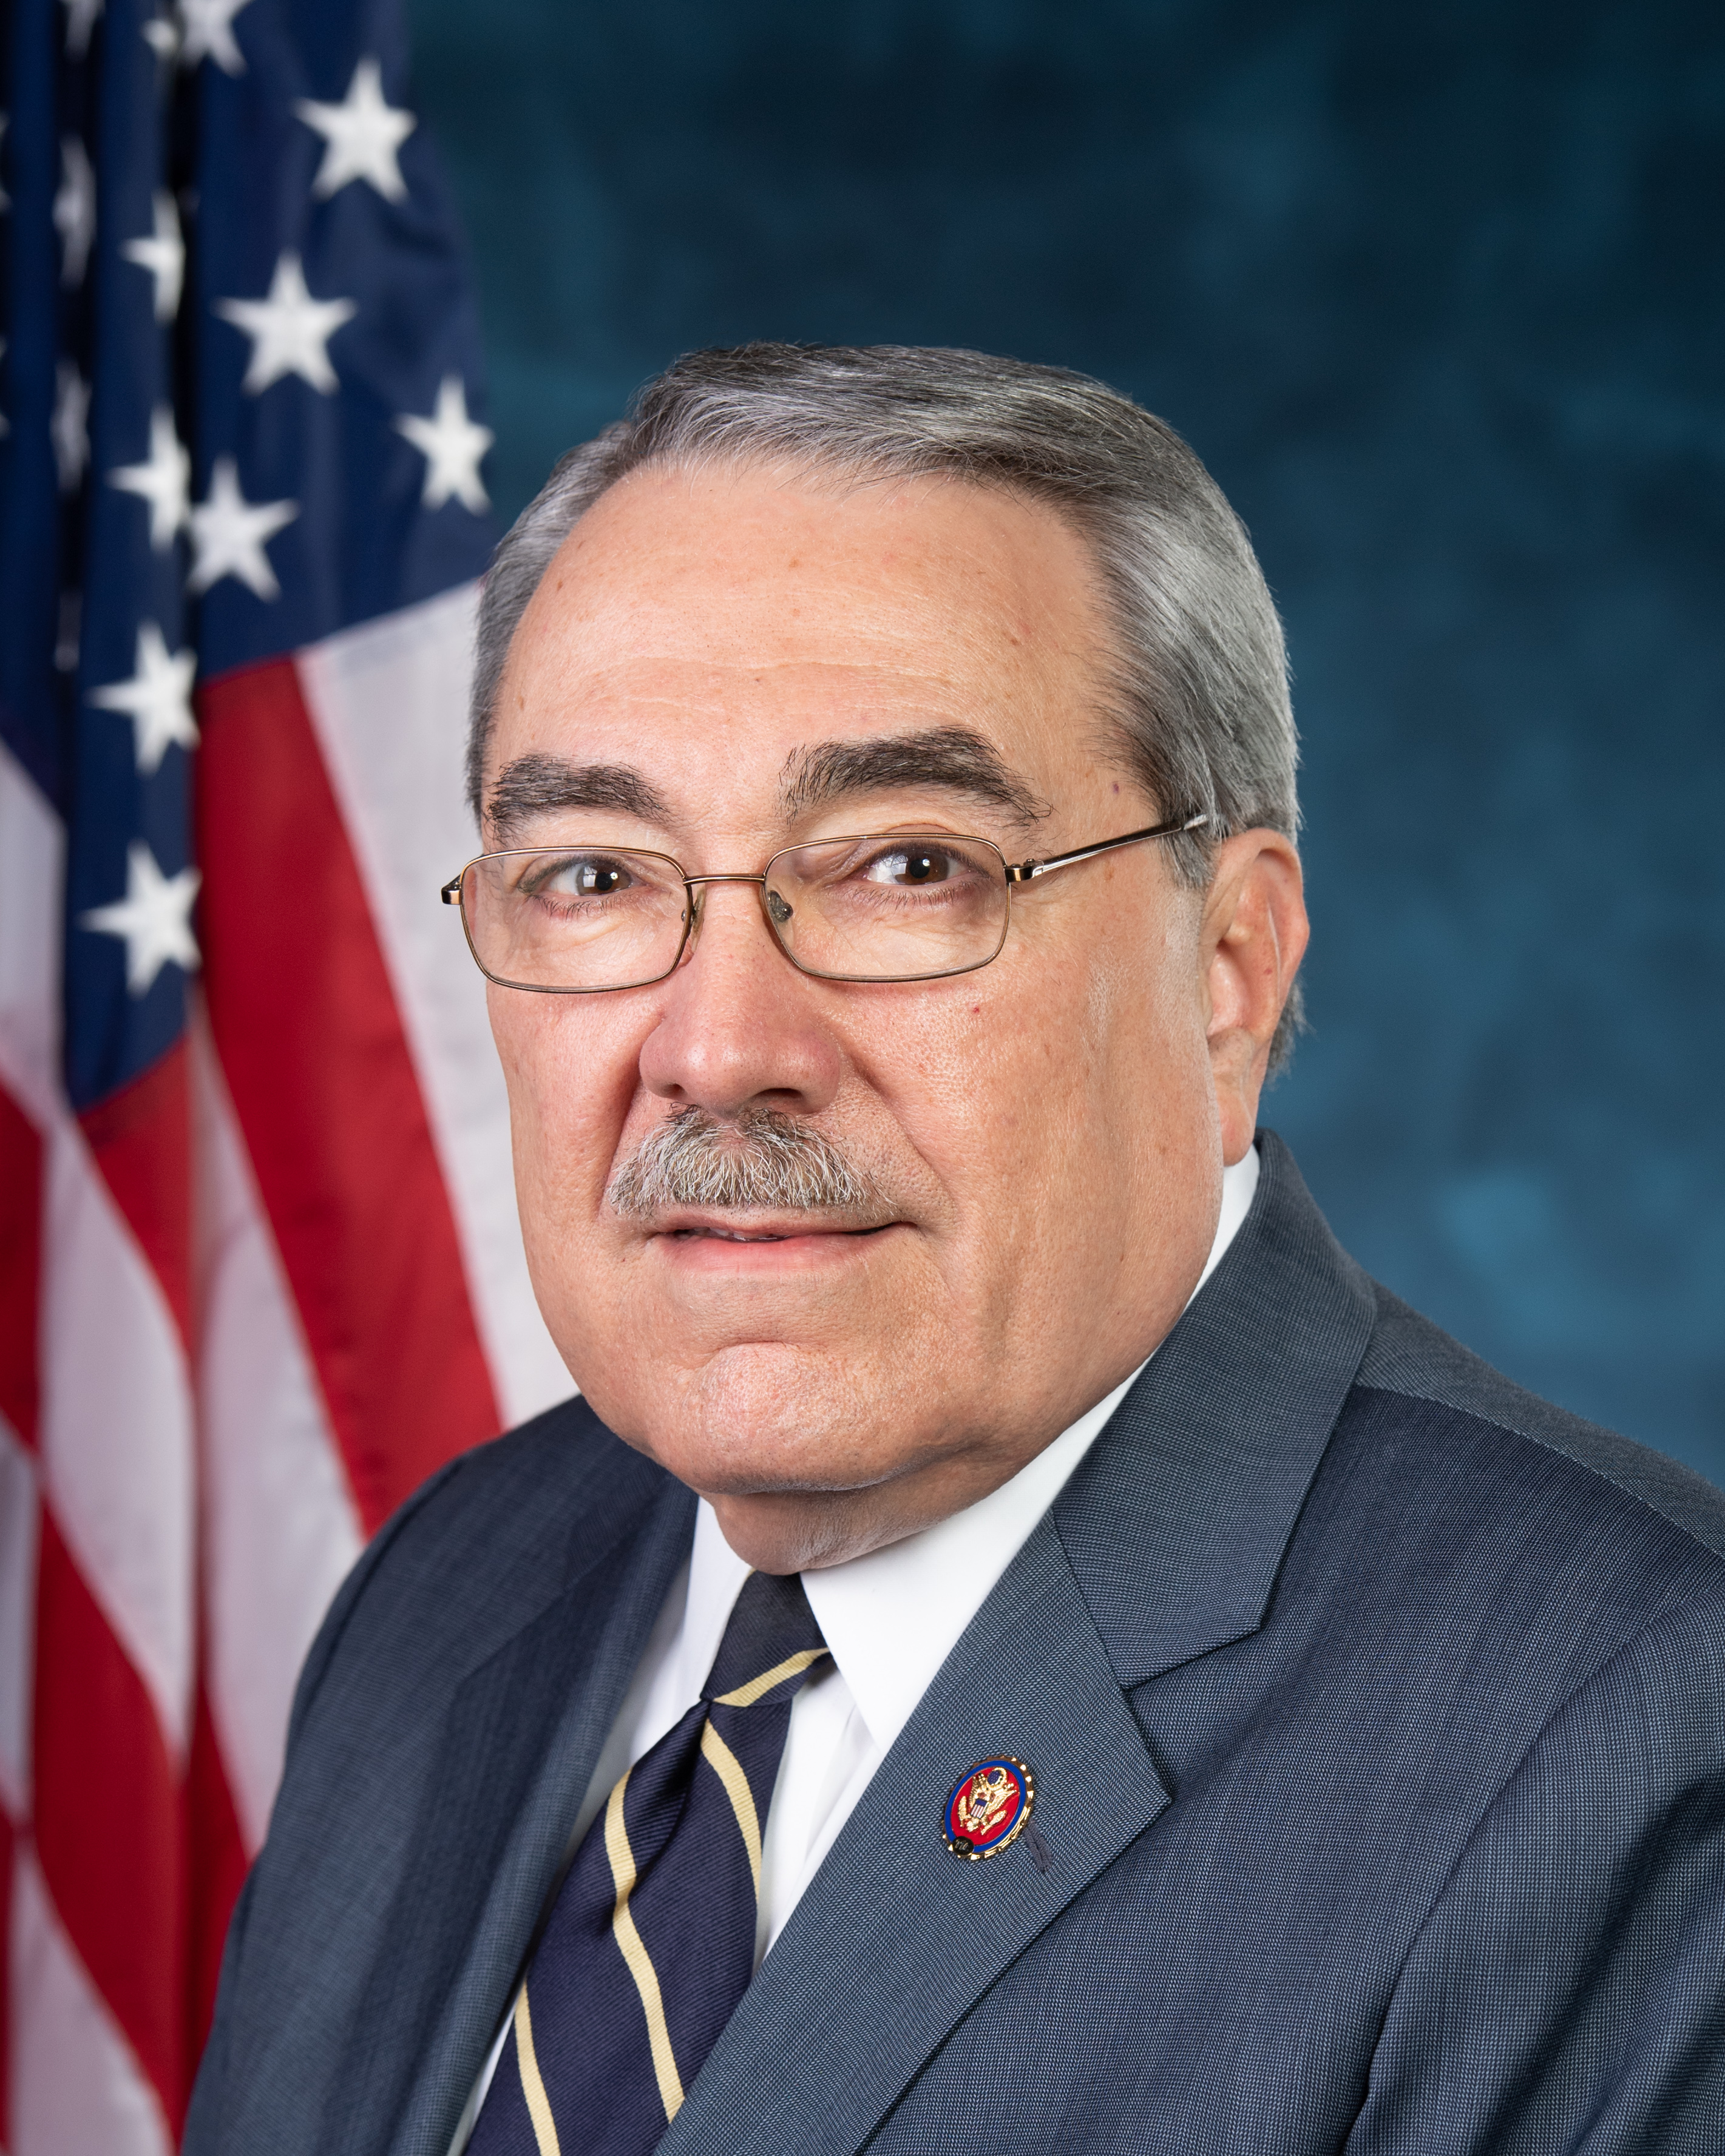 G. K. Butterfield - Official House Photo for the 116th Congress.